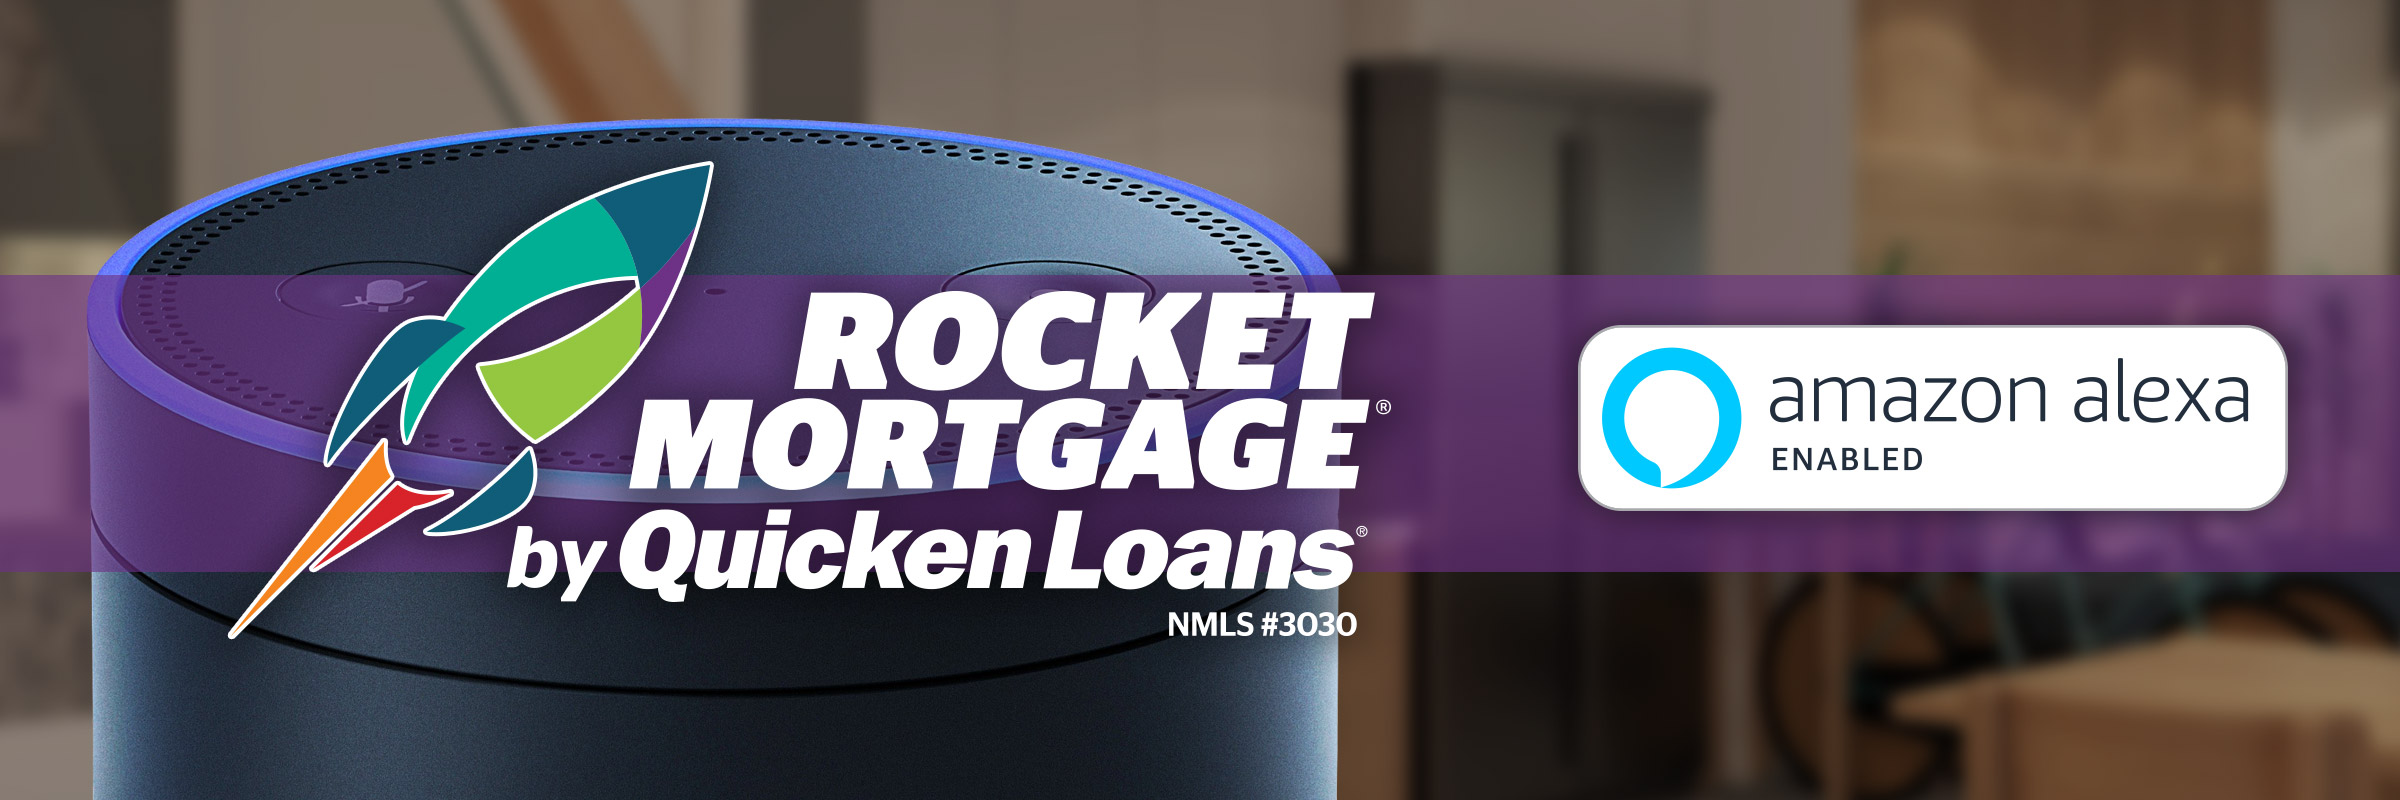 We've Reinvented the Mortgage Process to Put the Power in Your Hands